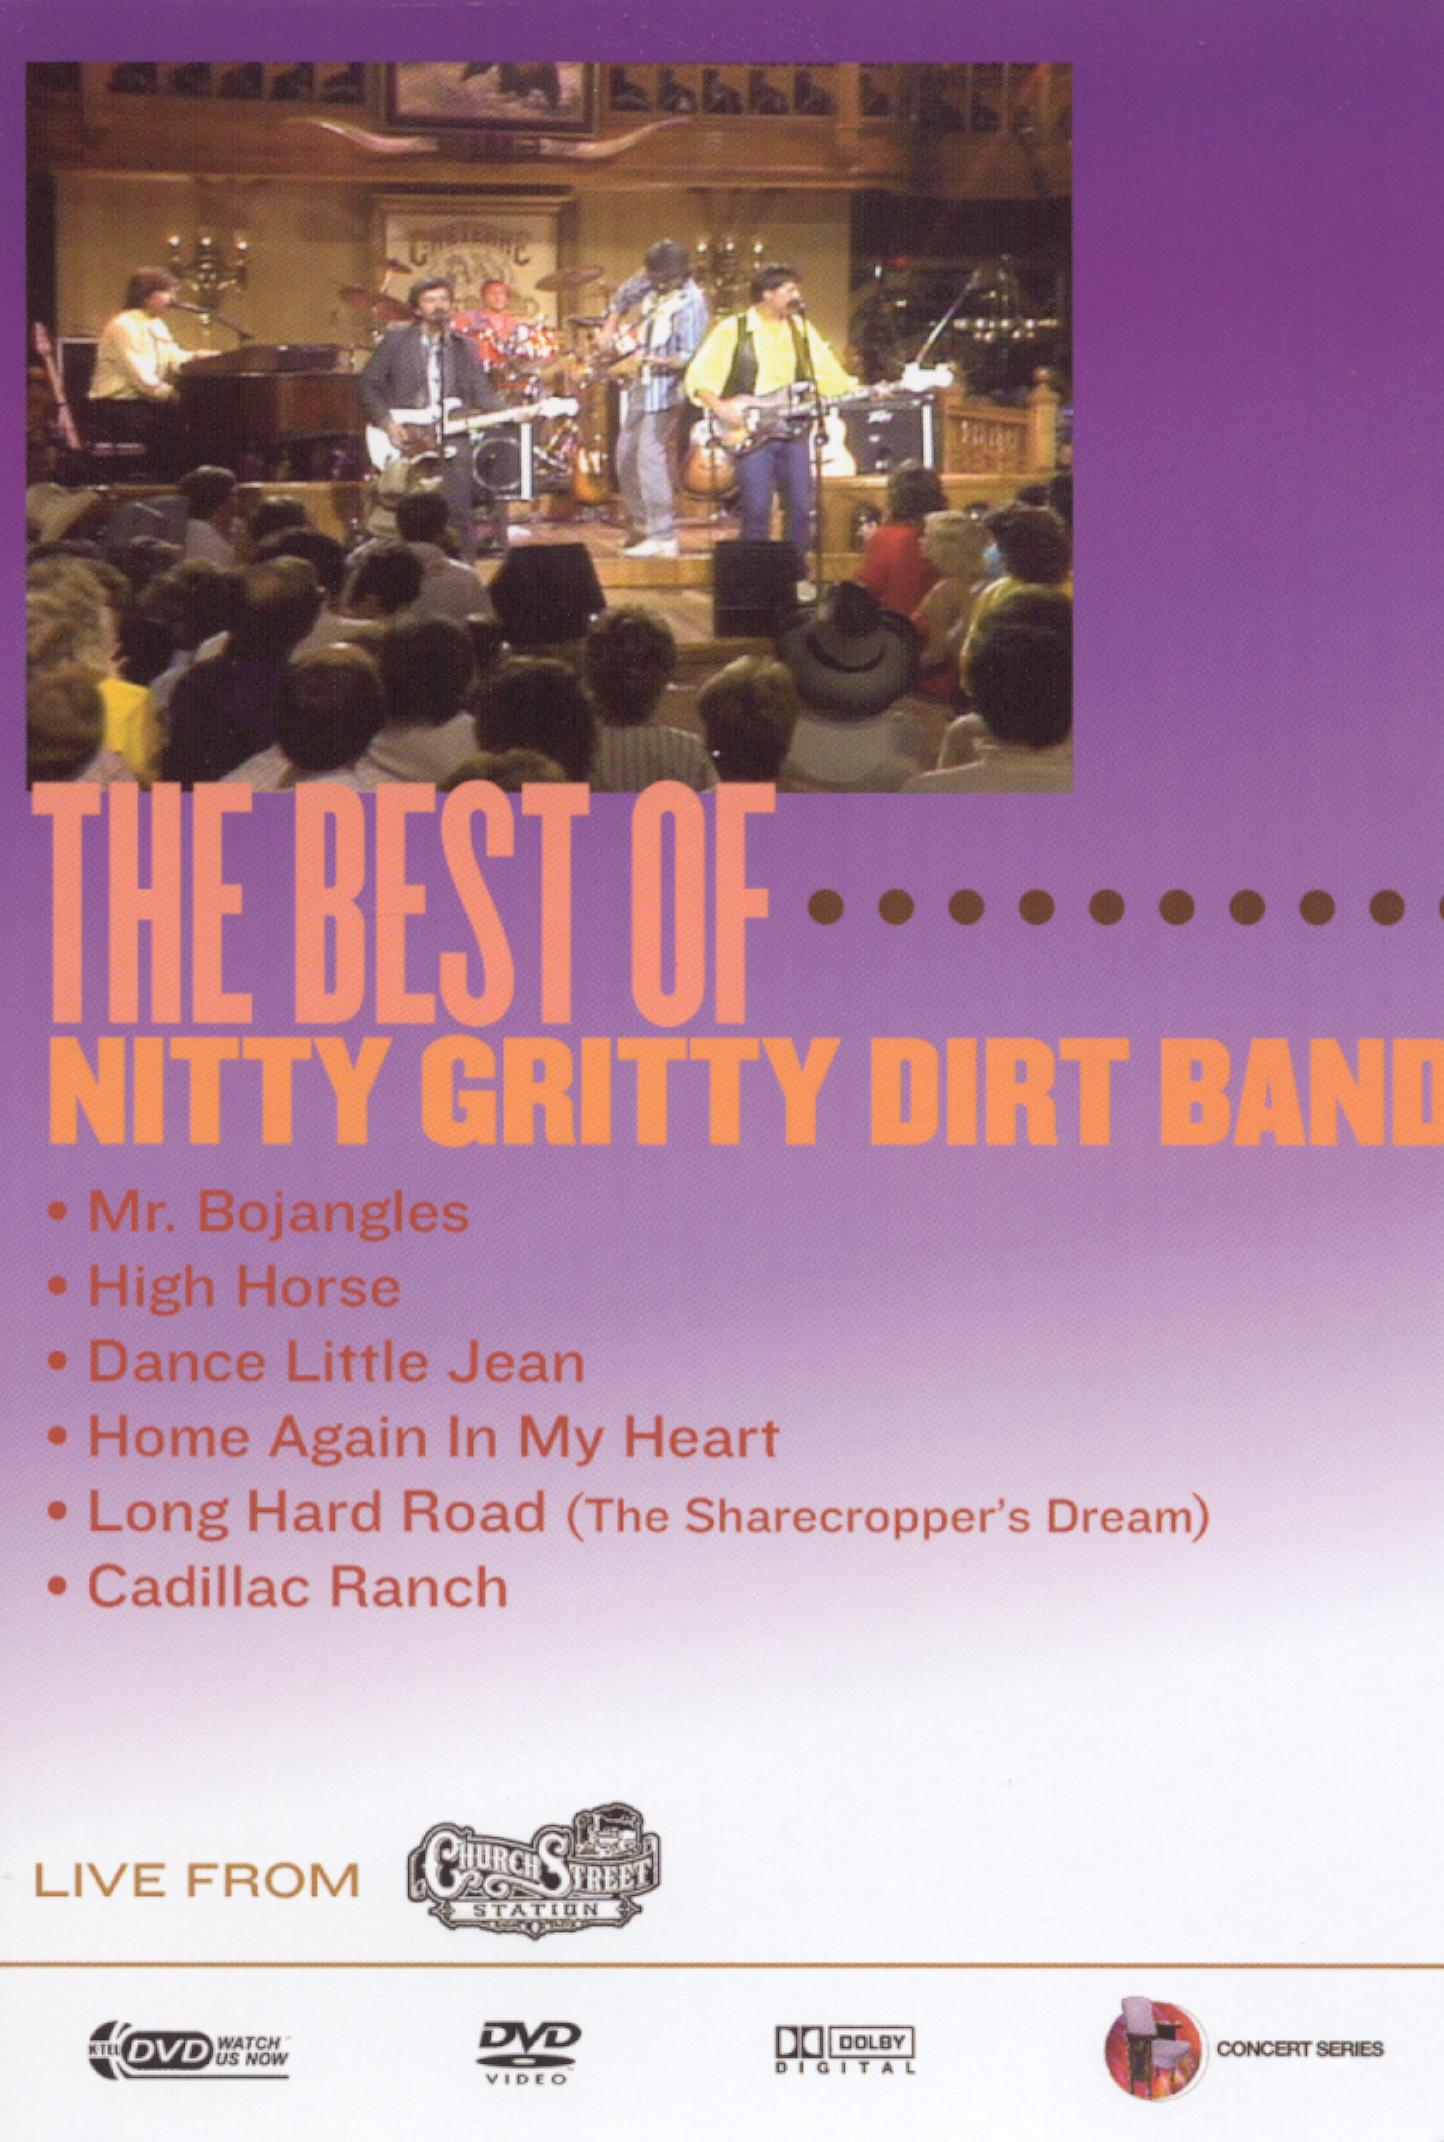 Live From Rock 'n' Roll Palace: The Best of the Nitty Gritty Dirt Band